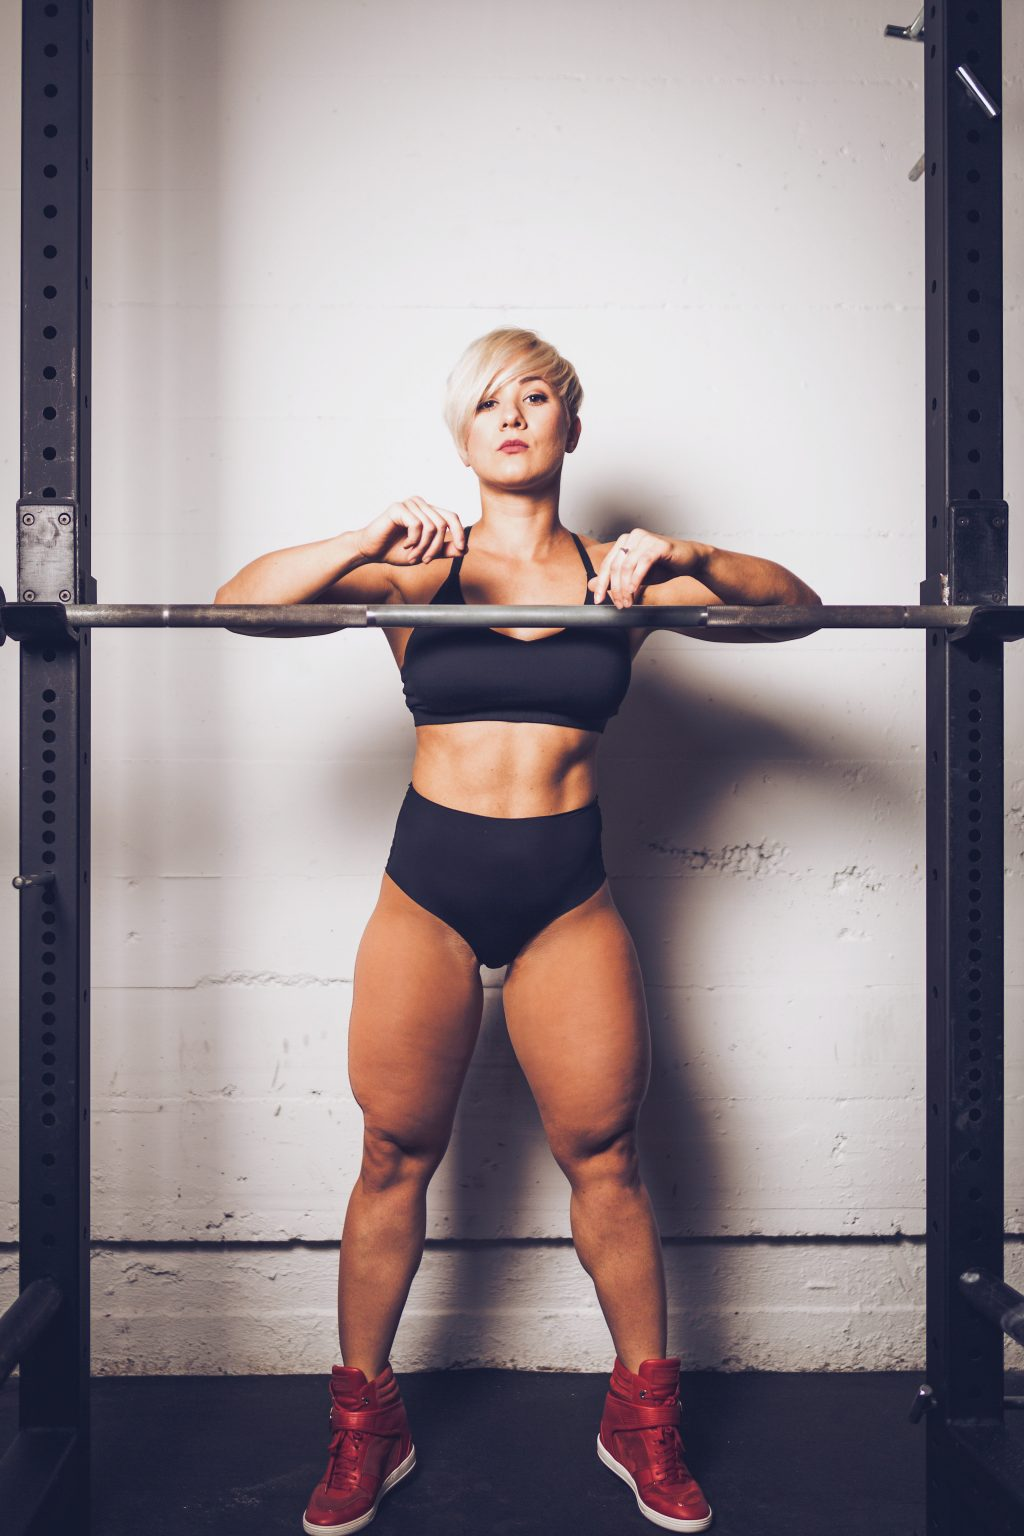 Personal Trainer Chicago, Illinois - Elena Soboleva